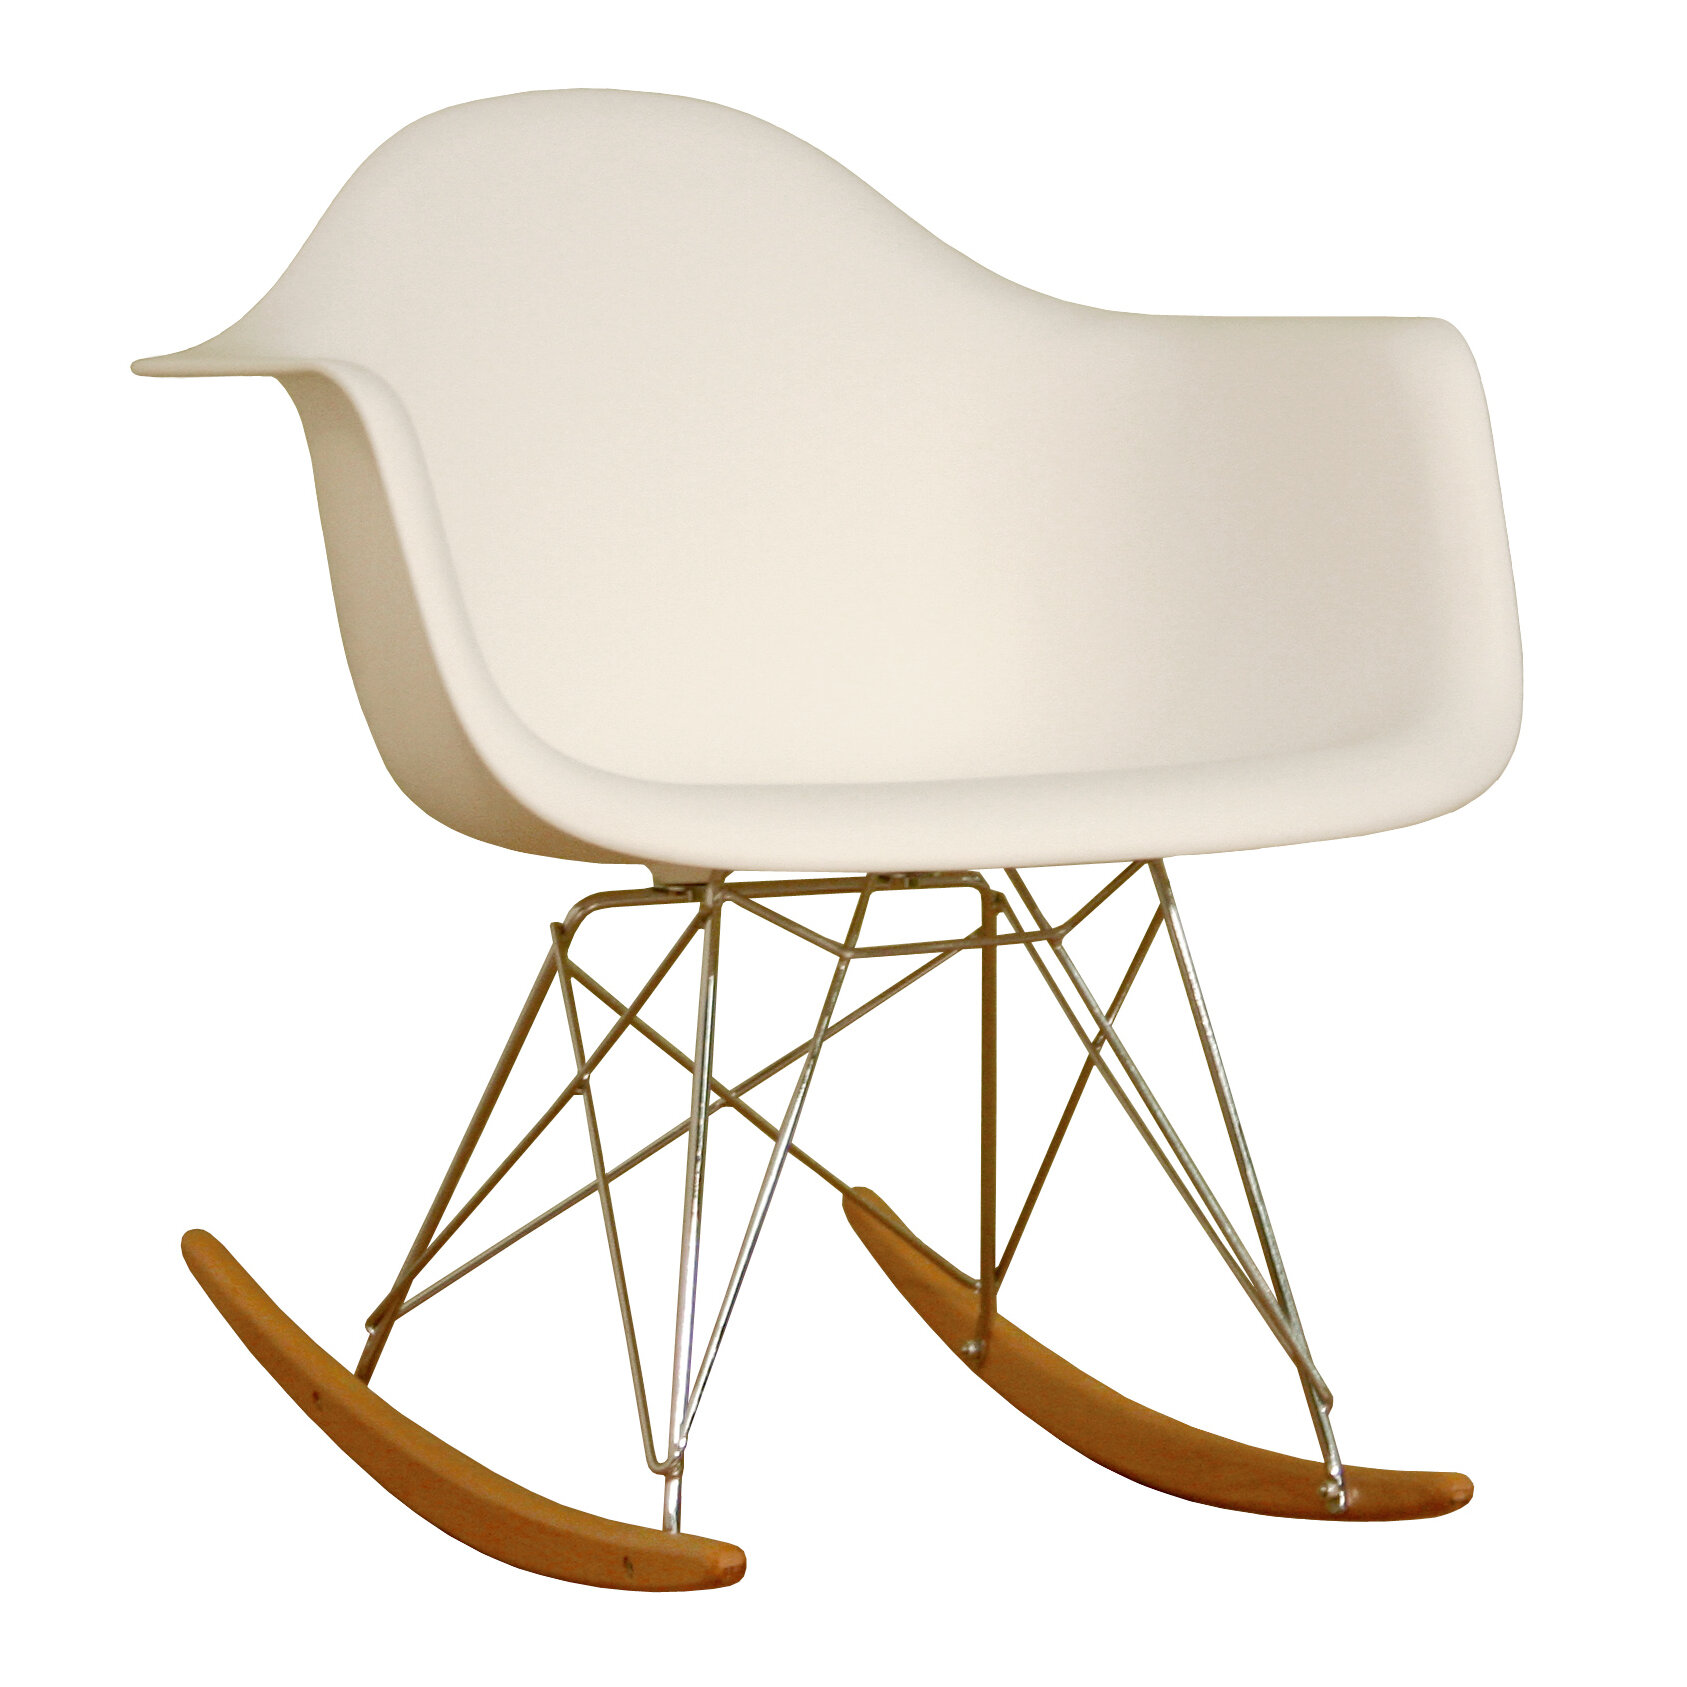 chair century wood products walnut solid masaya rosita mid abuelo rocker leather wrapped barley and co natural rocking